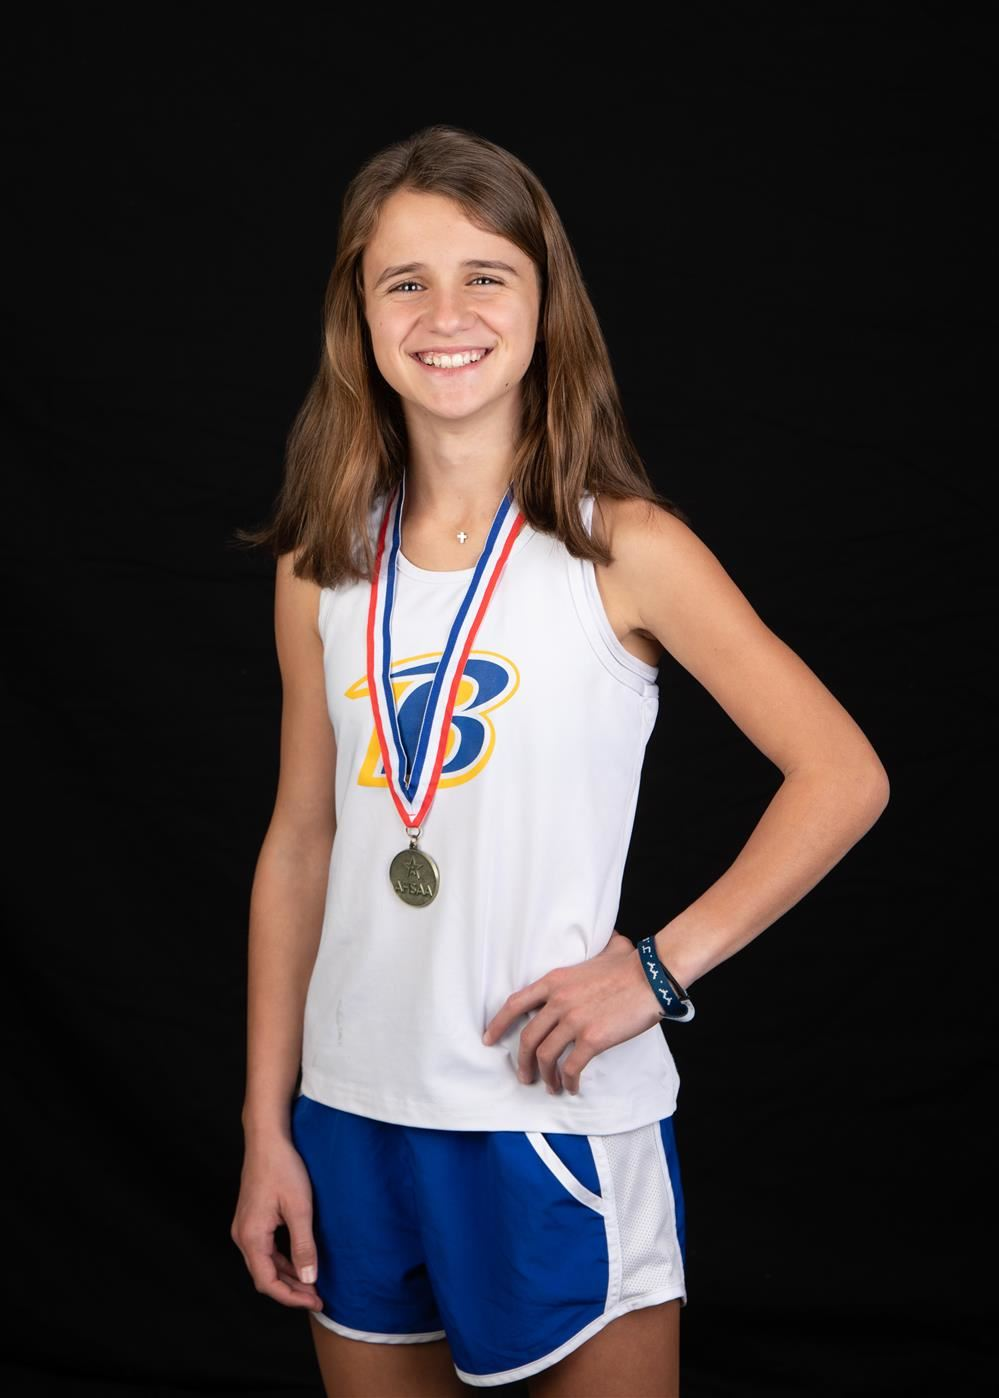 Molly Conway: AHSAA Girls Cross Country State Champion